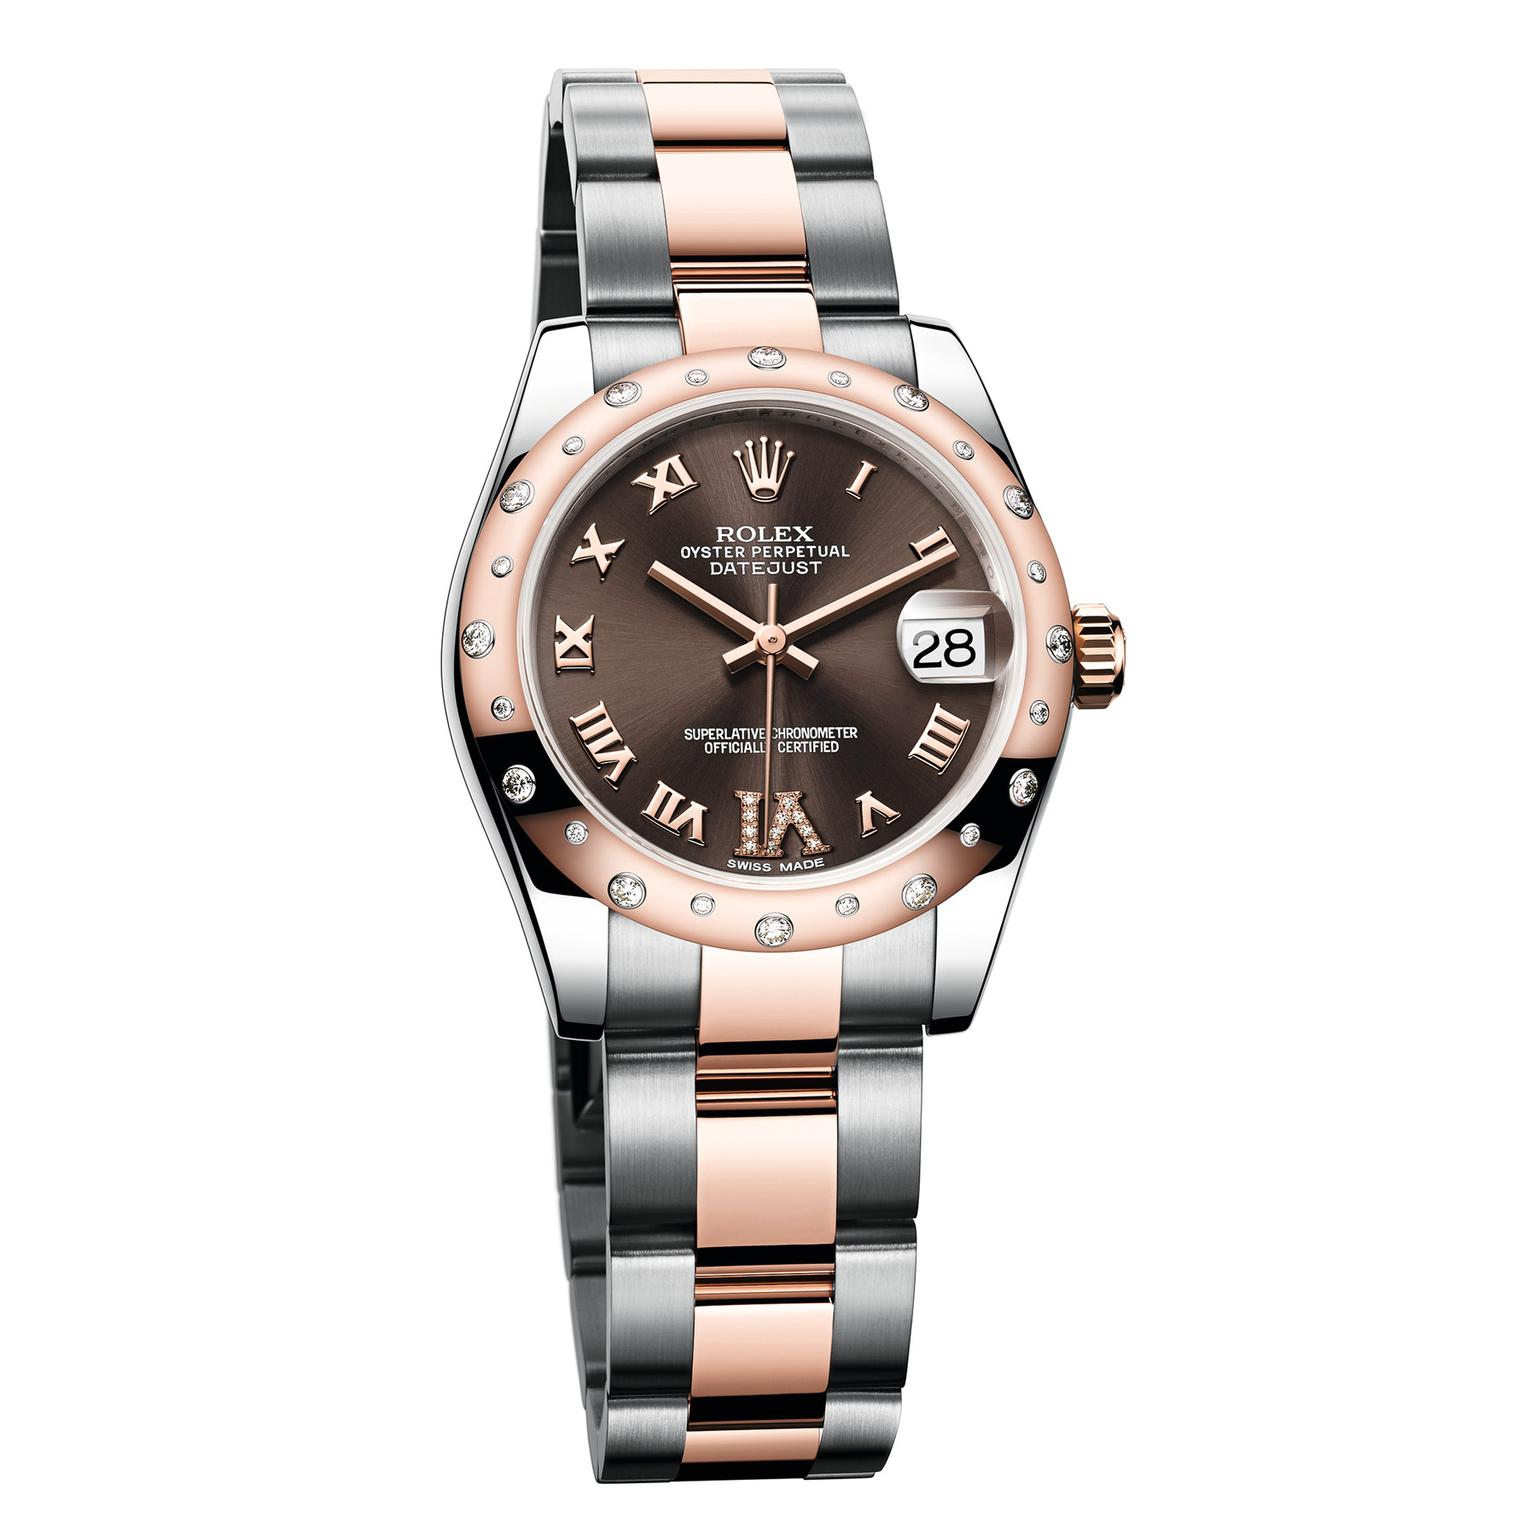 Rolex Oyster Perpetual Datejust 31mm watch